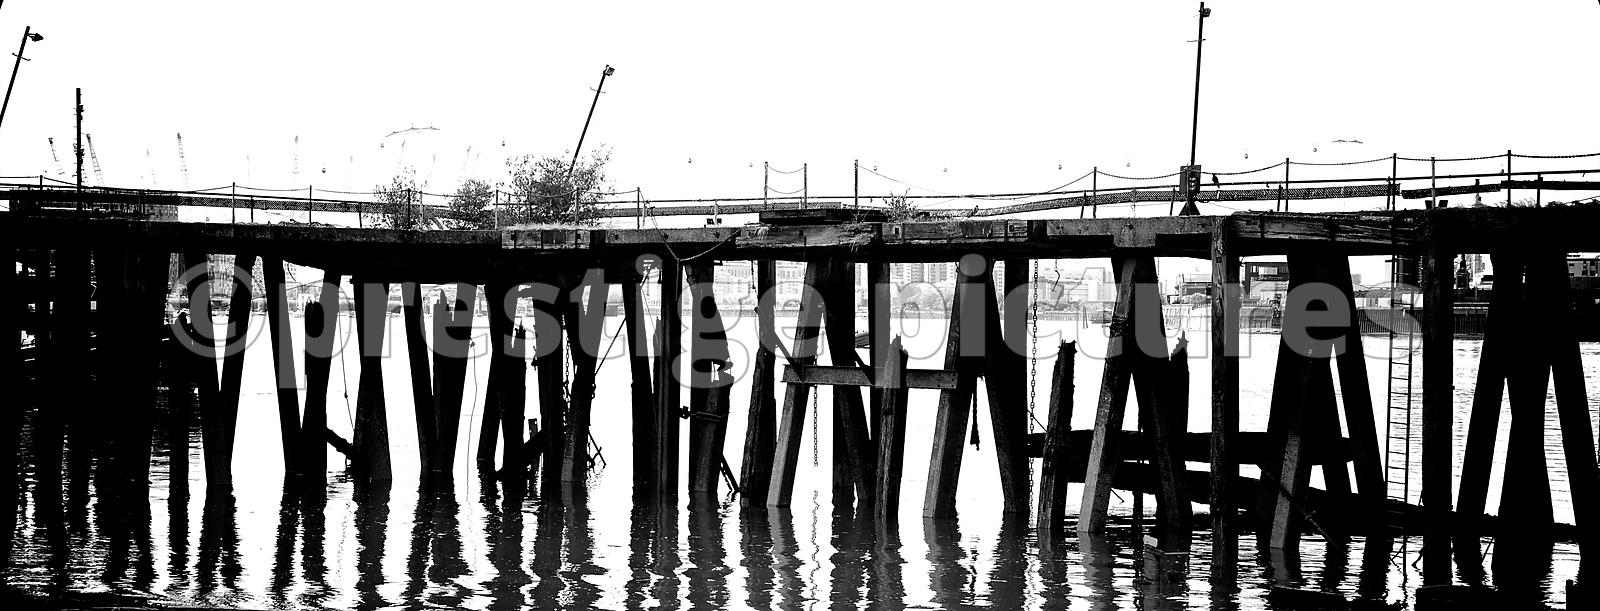 Legs of a Landing Stage and Reflections in the water of the River Thames